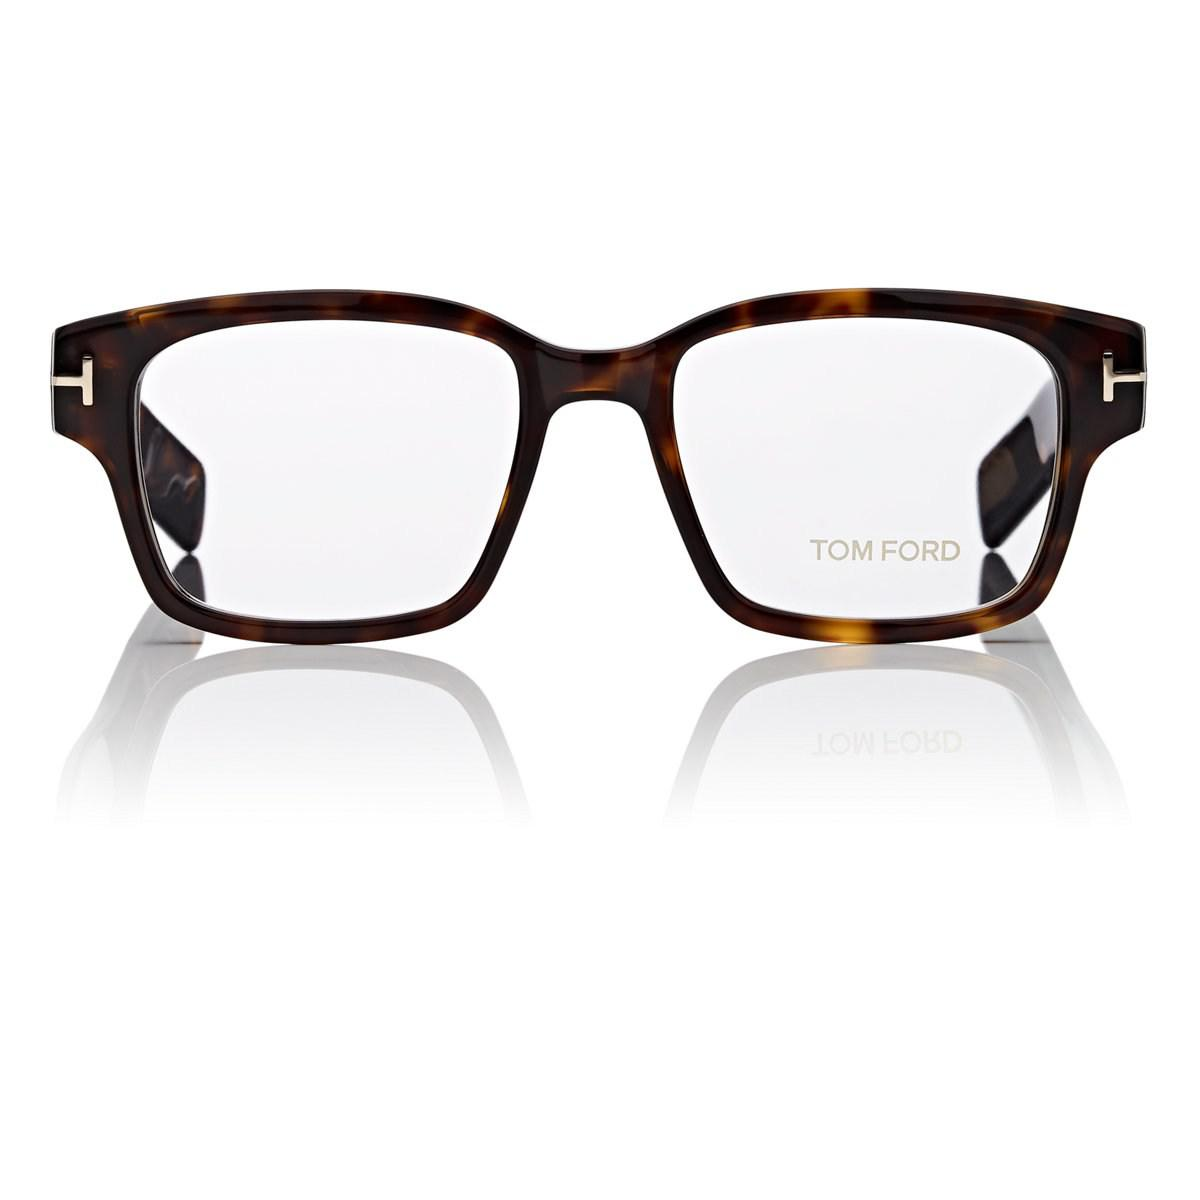 43ac7aaace8 Tom Ford Tf5527 Eyeglasses for Men - Lyst